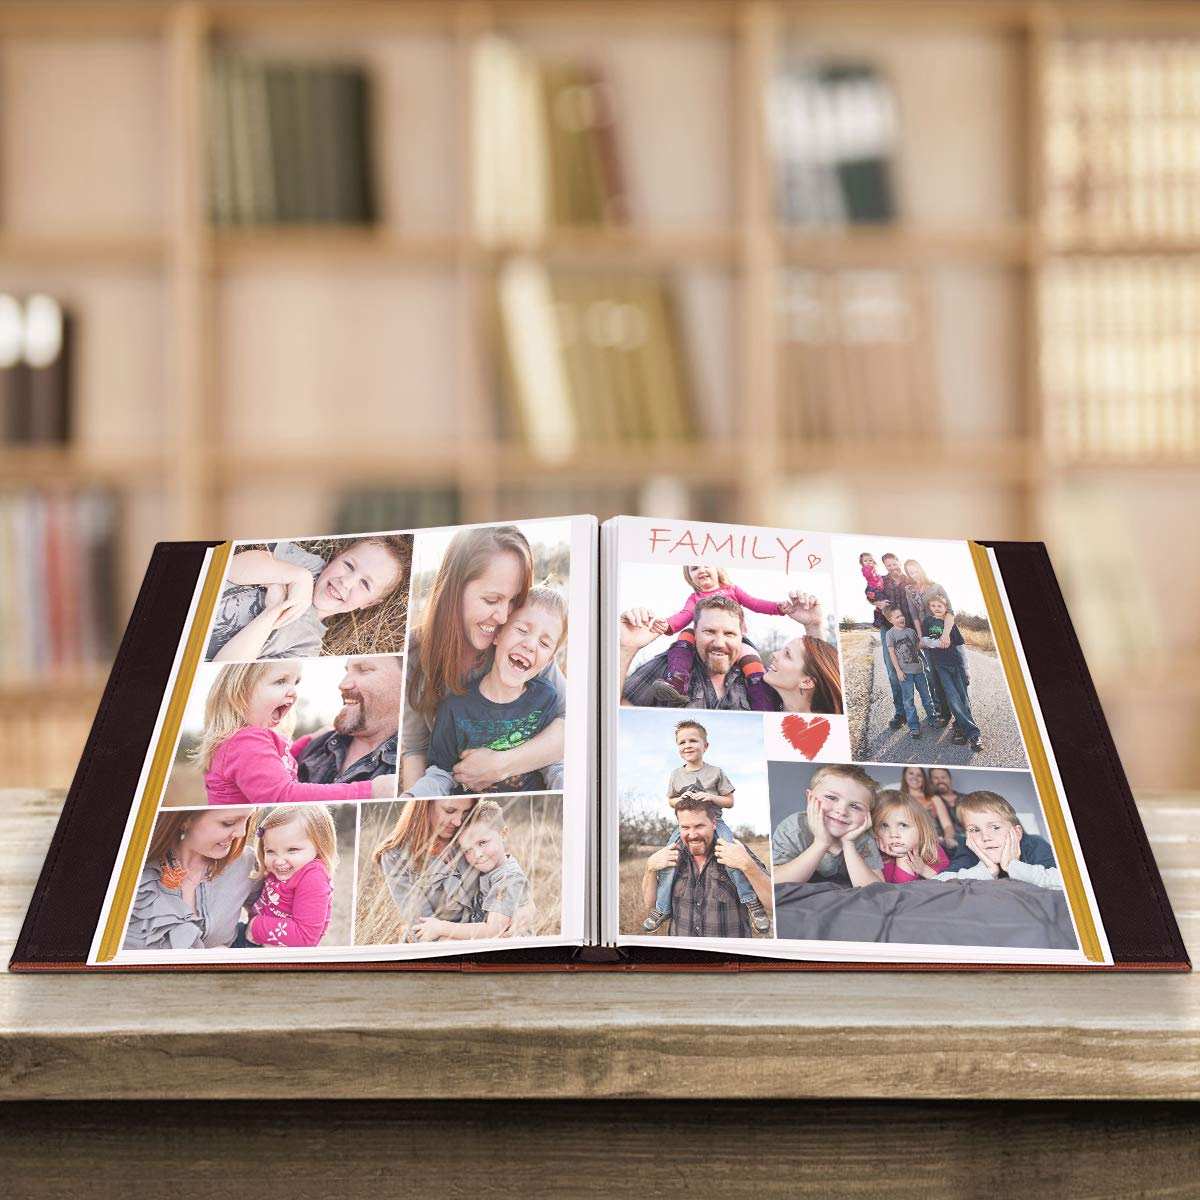 Photo/ Album/ Self/ Adhesive,/ Large/ Scrapbook/ Album/ Magnetic/ Pages/ with/ Leather/ Cover,/ Family/ Picture Albums/ Waterproof/ Memory/ Book/ for New/ Baby Wedding,/ Anniversa